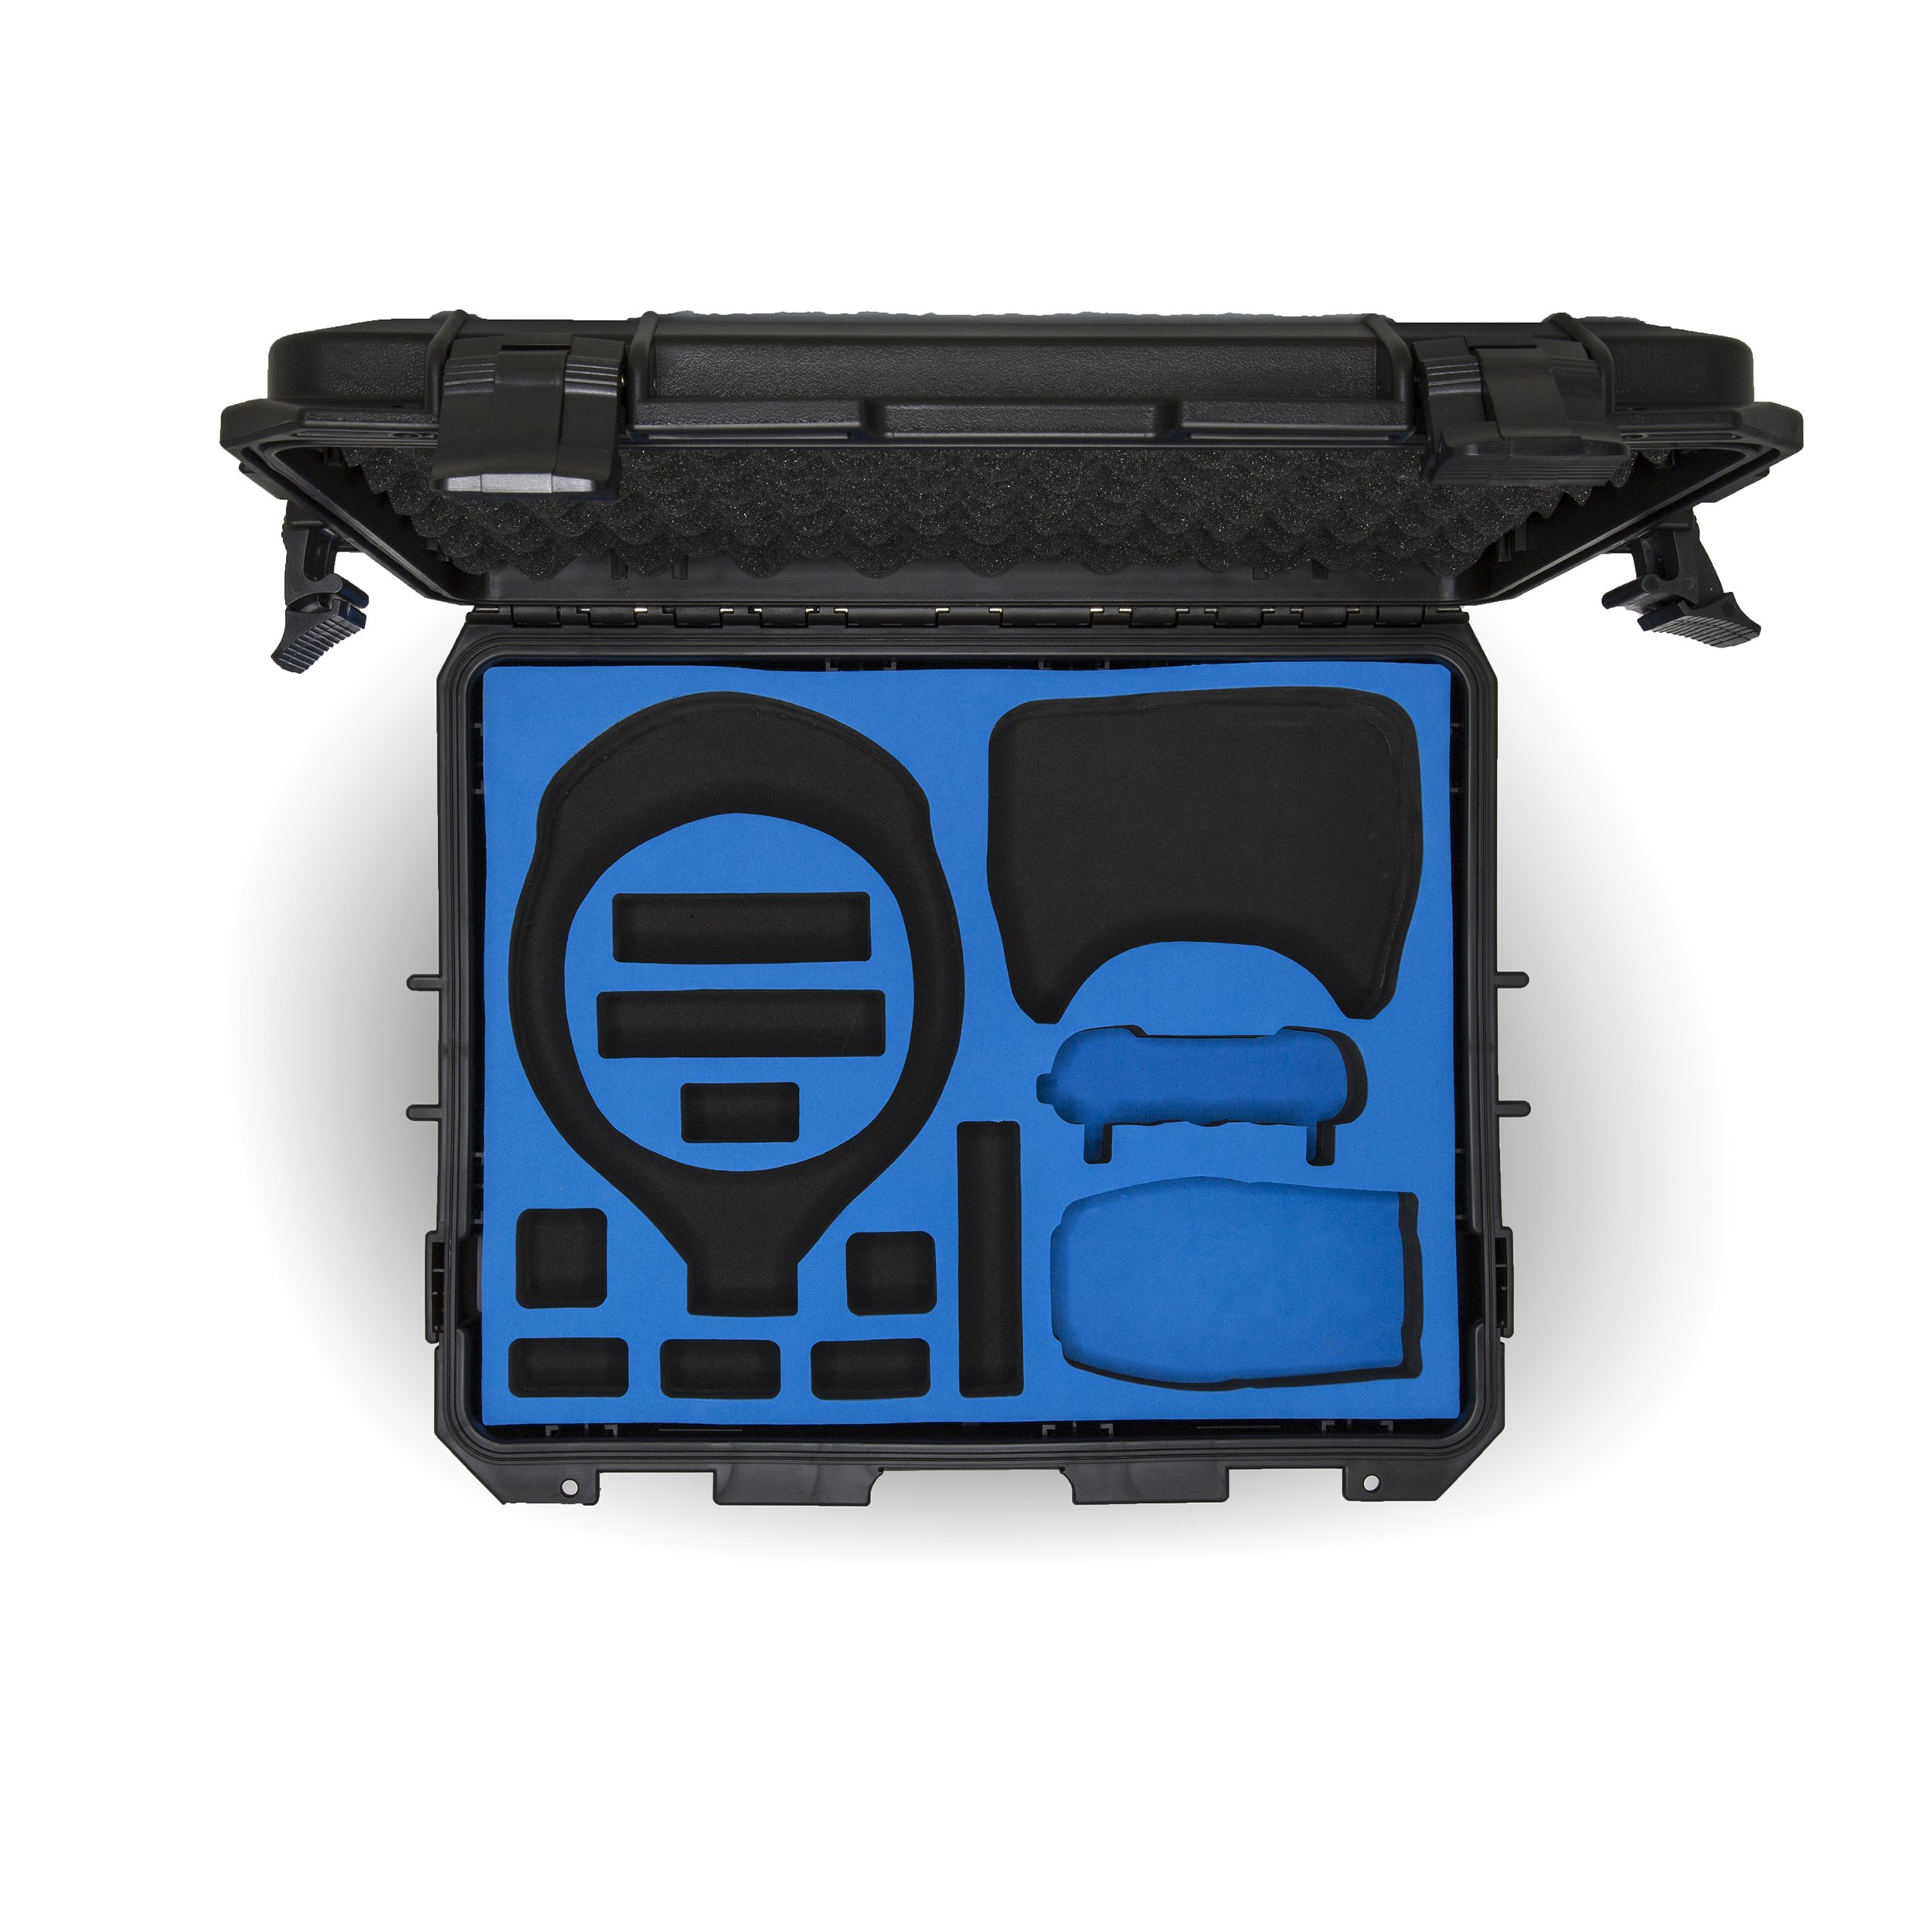 Ultimaxx Water Proof Rugged Compact Storage Hard Case for DJI FPV VR Goggles and DJI Mavic Air + Fits Extra Accessories by Ultimaxx (Image #3)